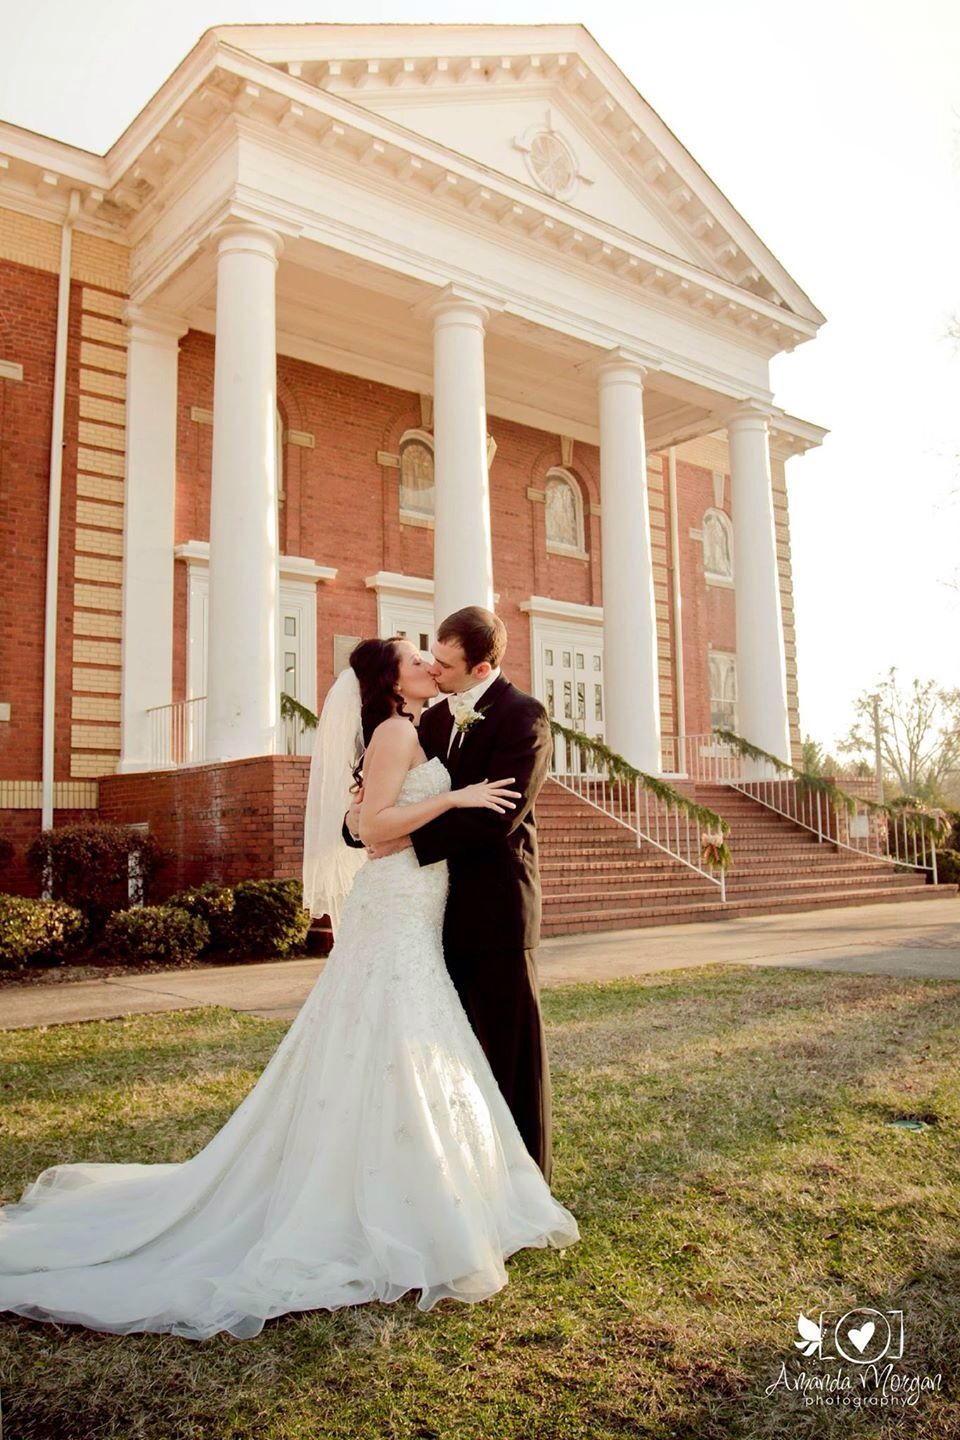 Downtown Landrum Landrum Sc Wedding Photography March